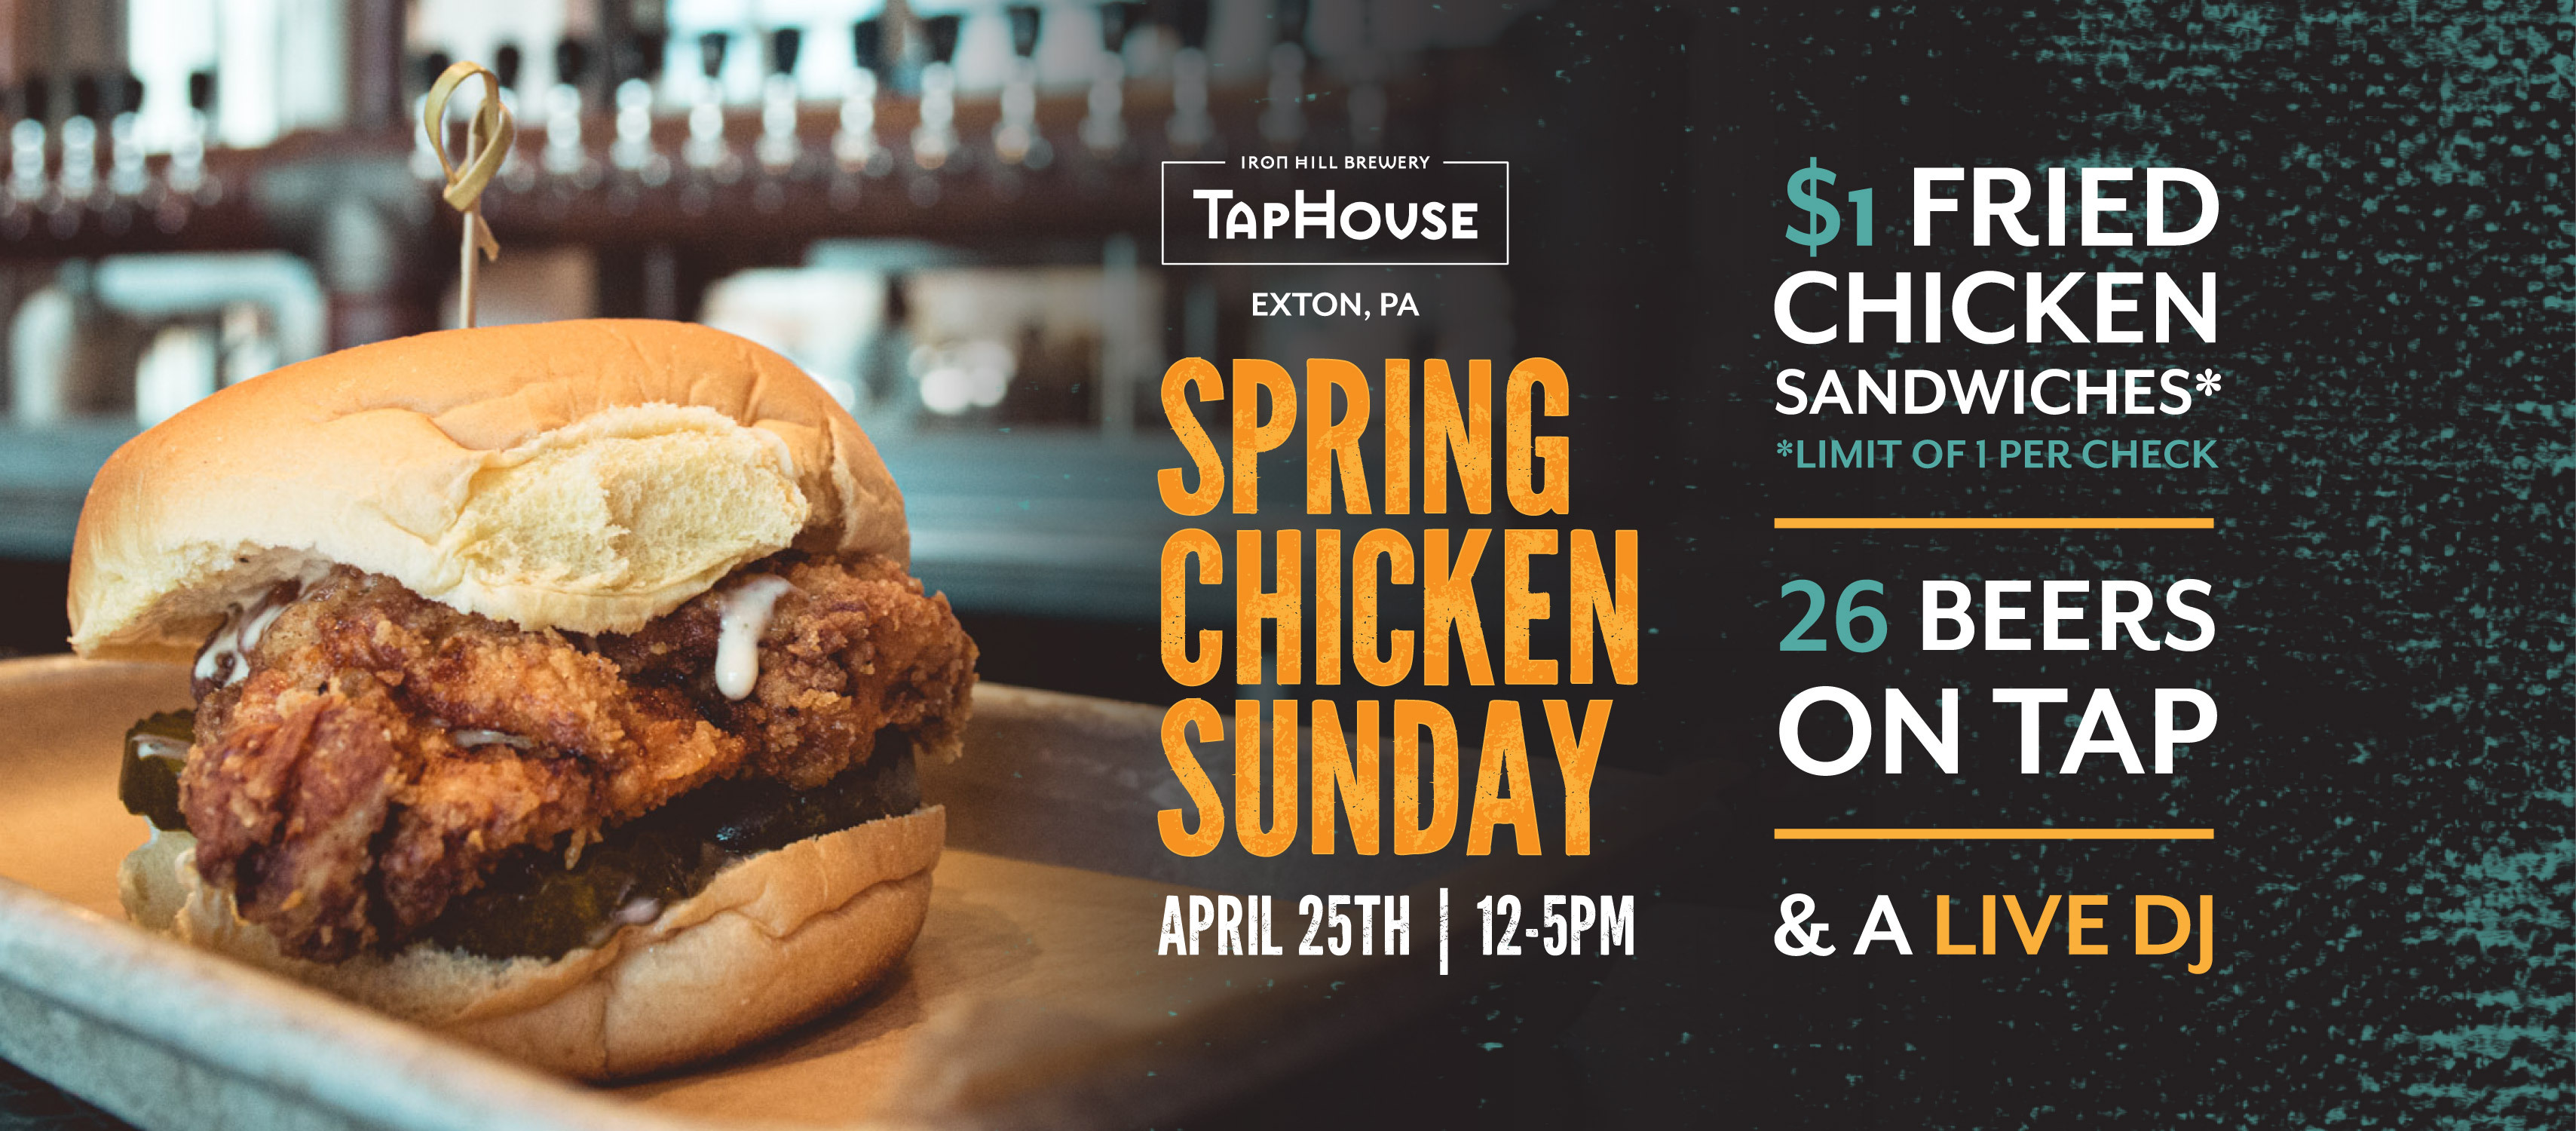 TapHouse - Spring Chicken Sunday